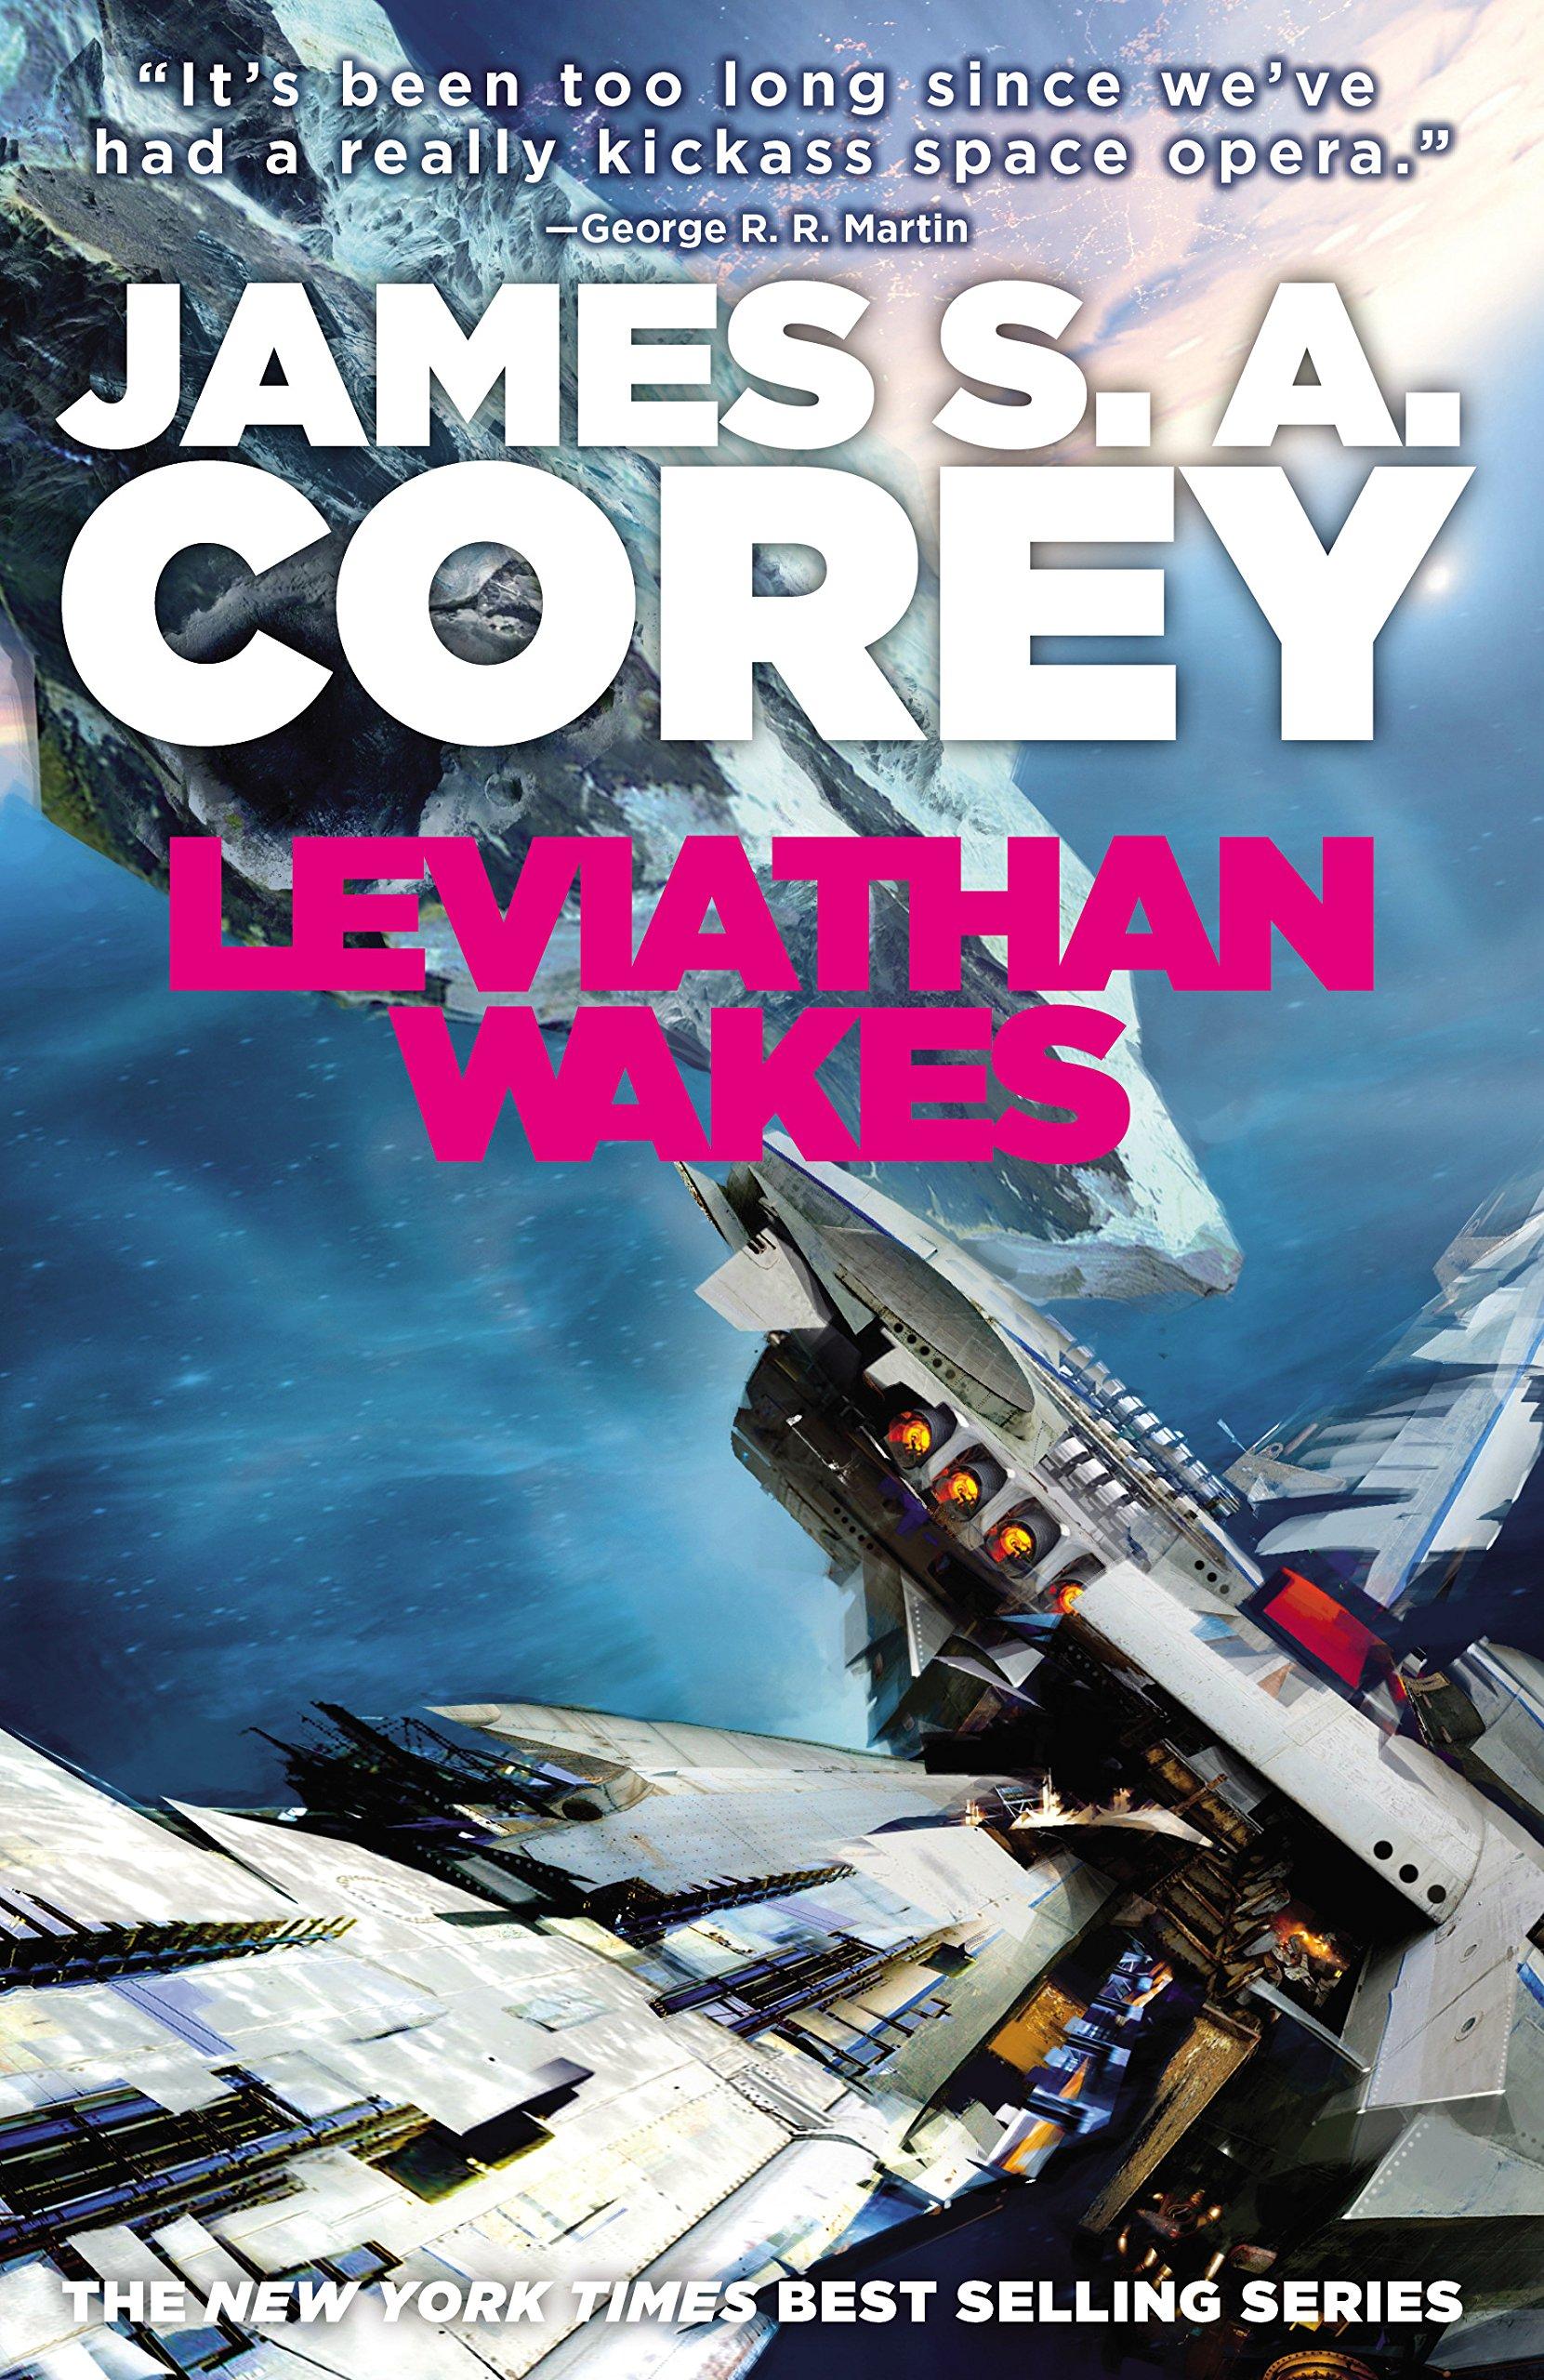 Book Review: Leviathan Wakes (Expanse #1), by James S. A. Corey